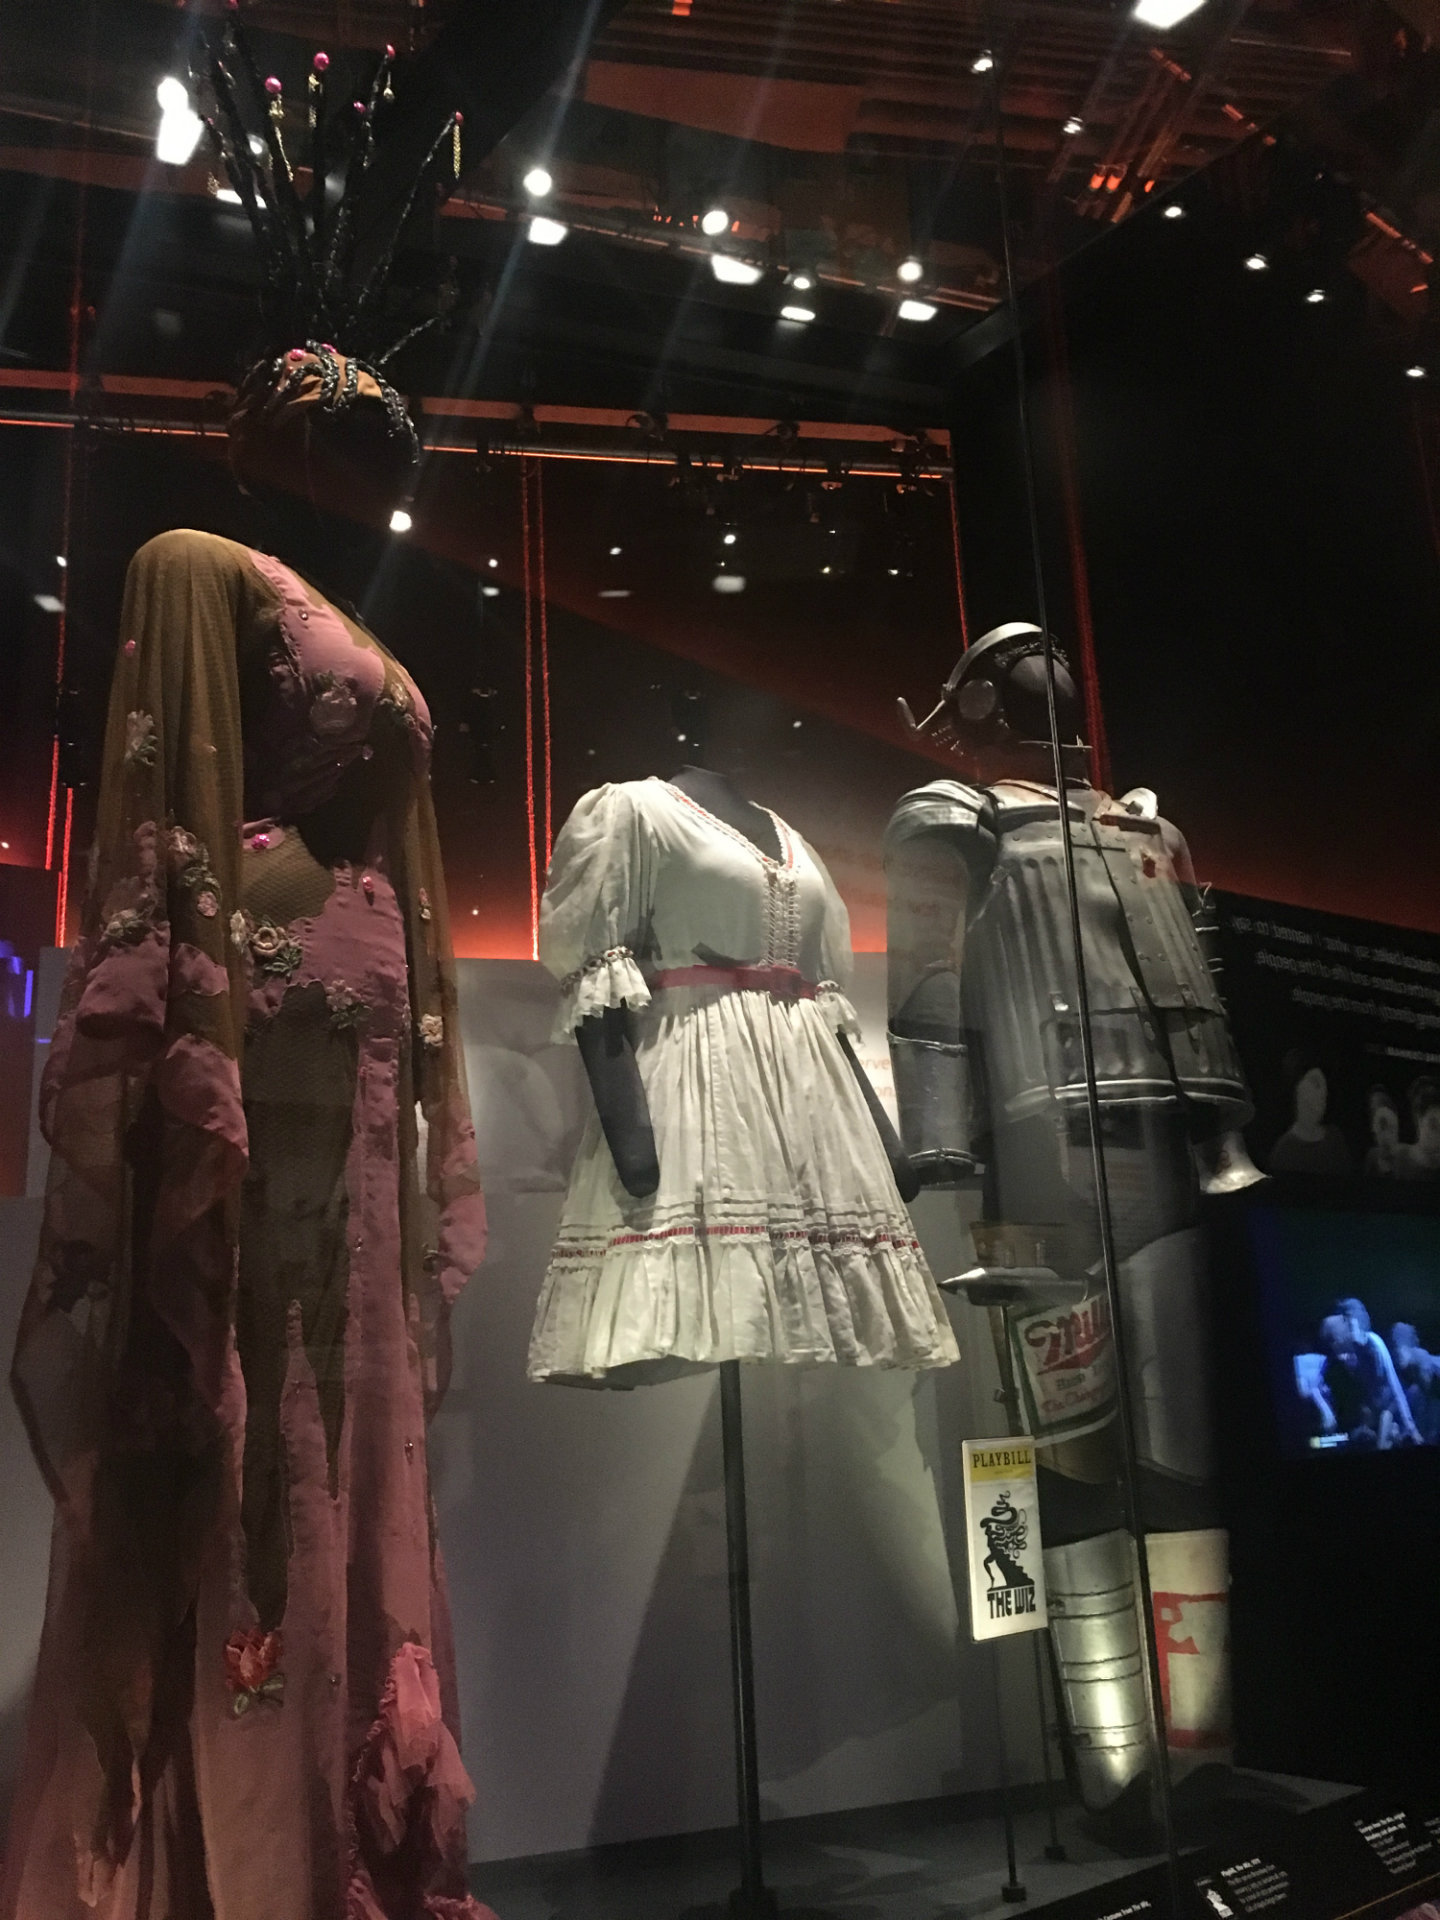 The 1970s Broadway costumes of Glinda (pale pink embroidered sheath-dress with elaborate matching hat which has 12 tree-like prongs atop it), Dorothy (knee-length white dress)  and Tinman (multiple pieces of scrap metal) from the original Broadway production.